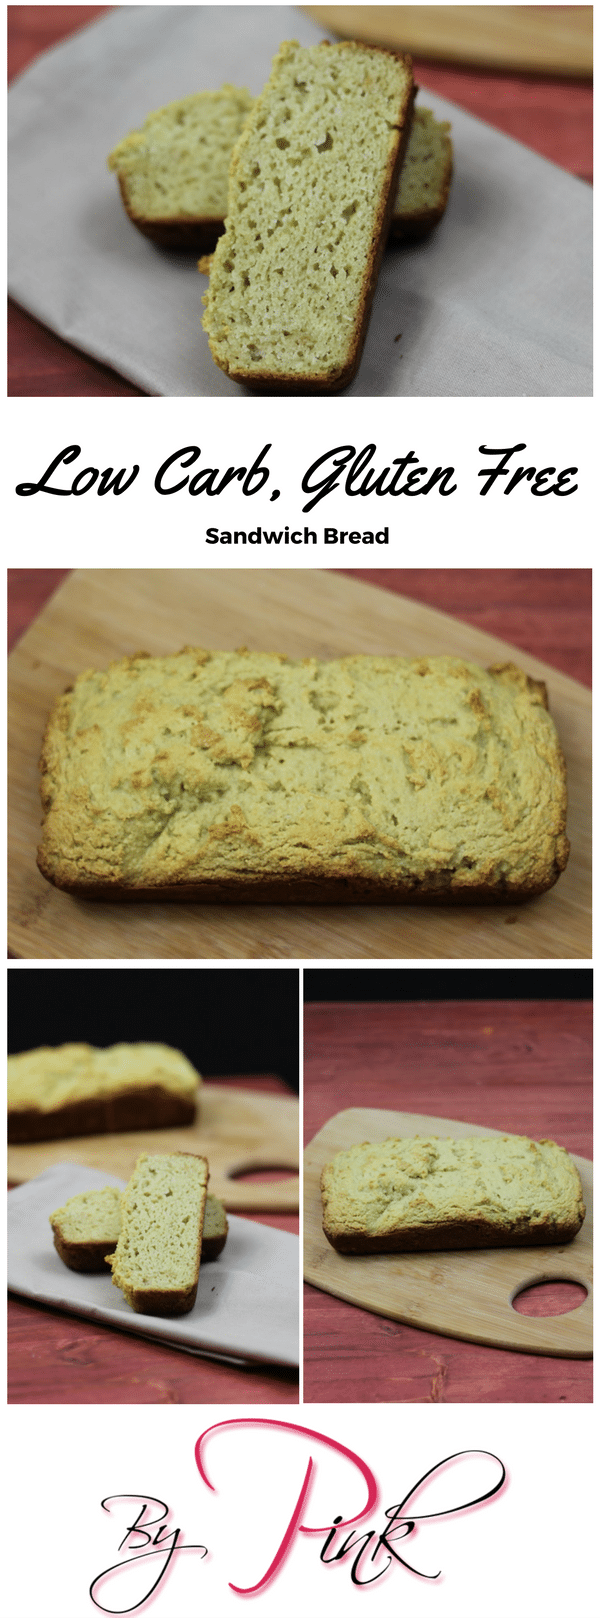 LOW CARB, GLUTEN FREE SANDWICH BREAD